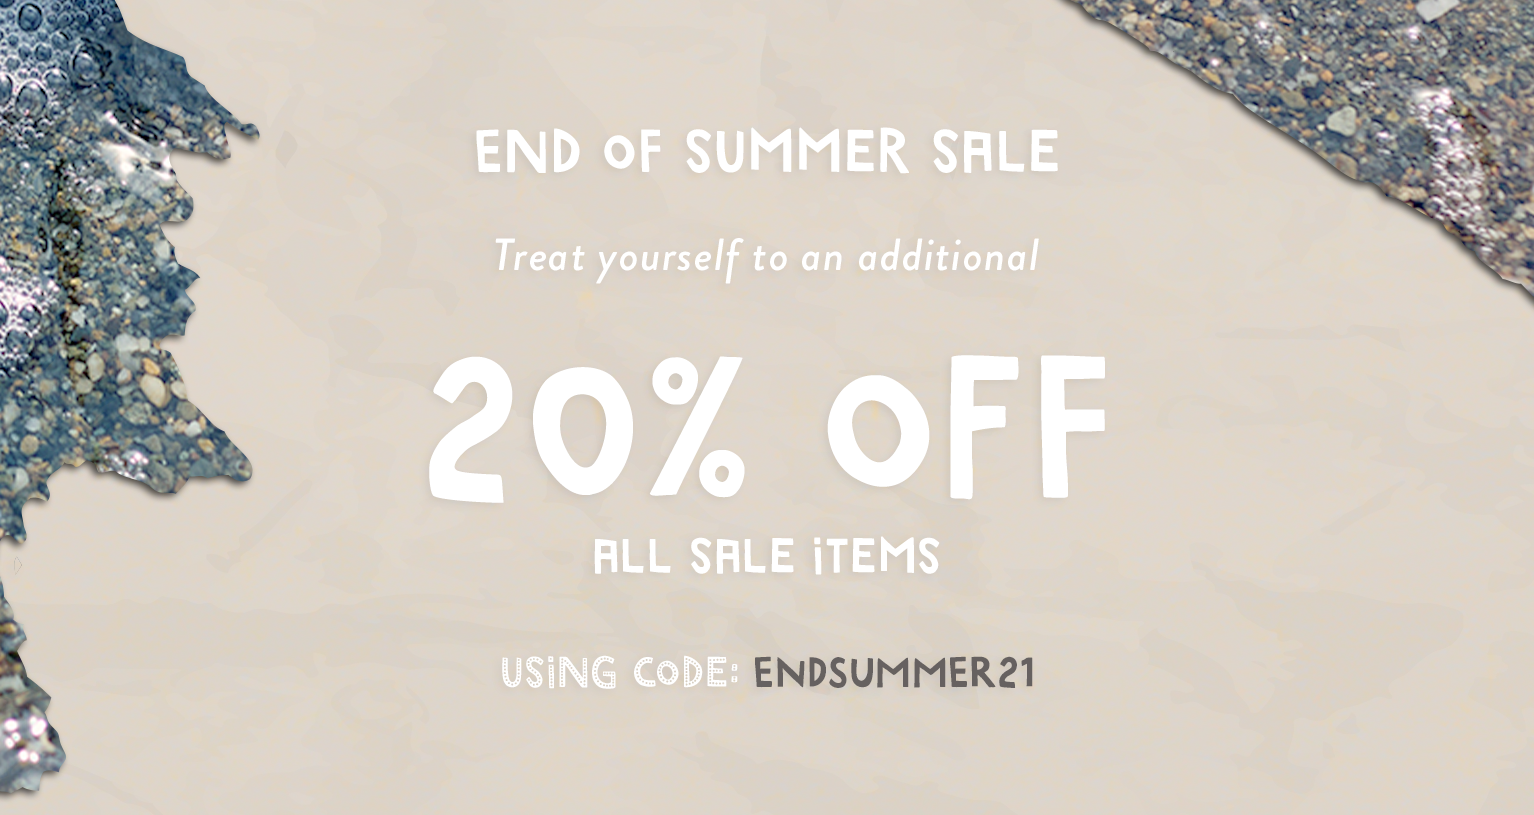 End of Summer Sale - Up to 50% off select styles